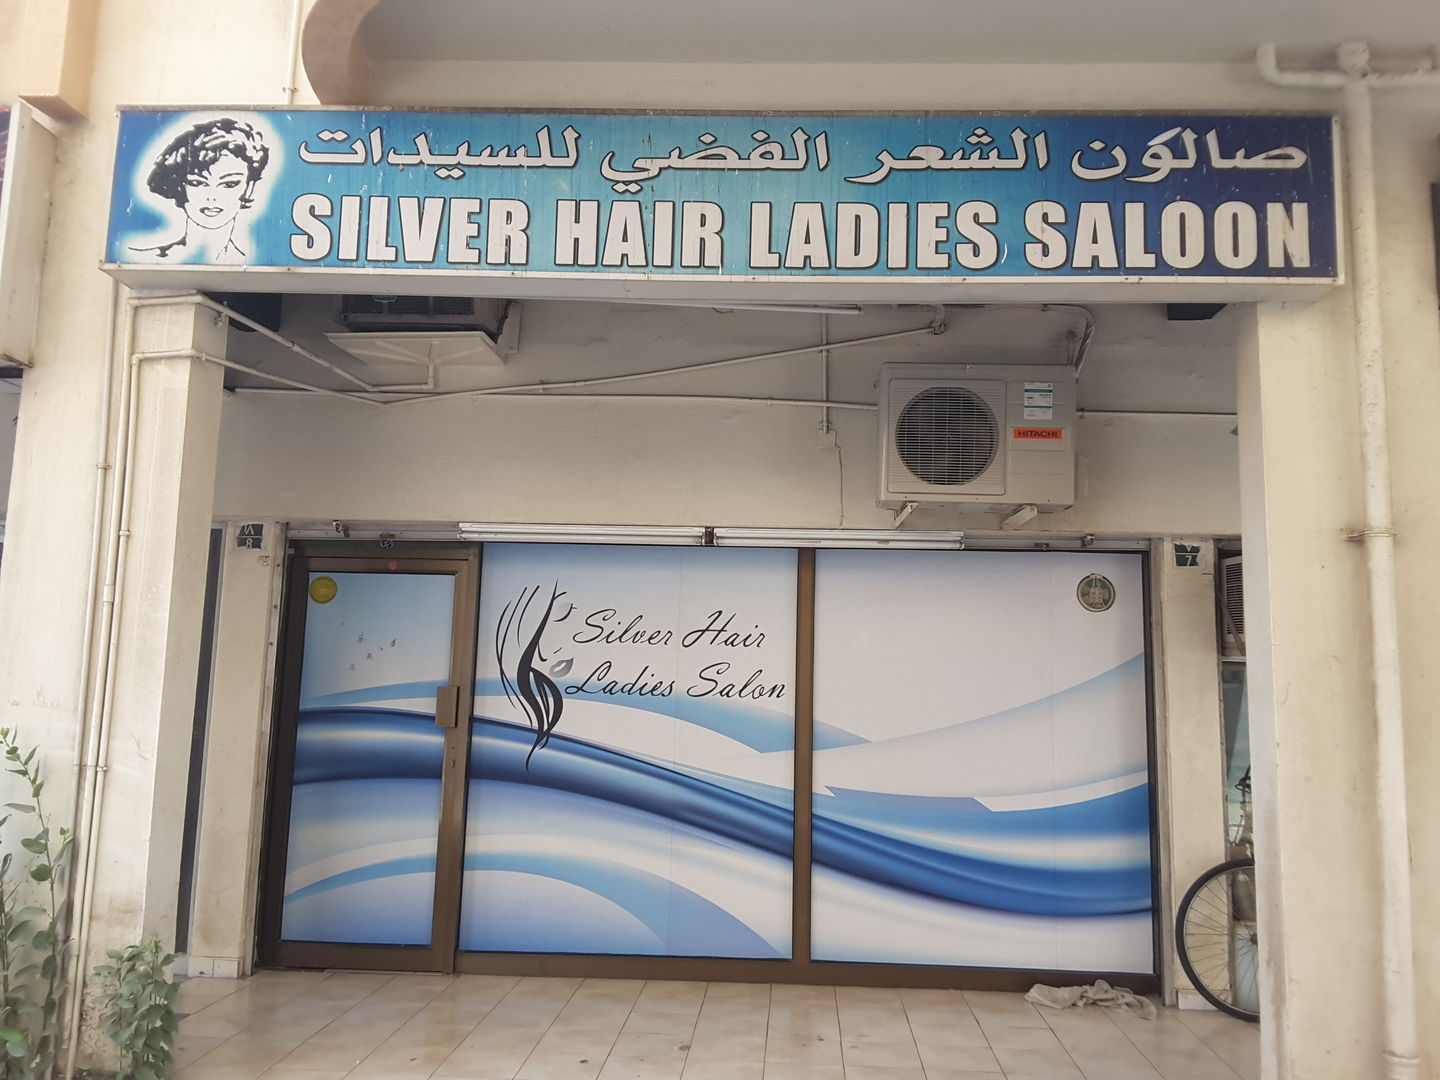 HiDubai-business-silver-hair-ladies-salon-beauty-wellness-health-beauty-salons-al-karama-dubai-2